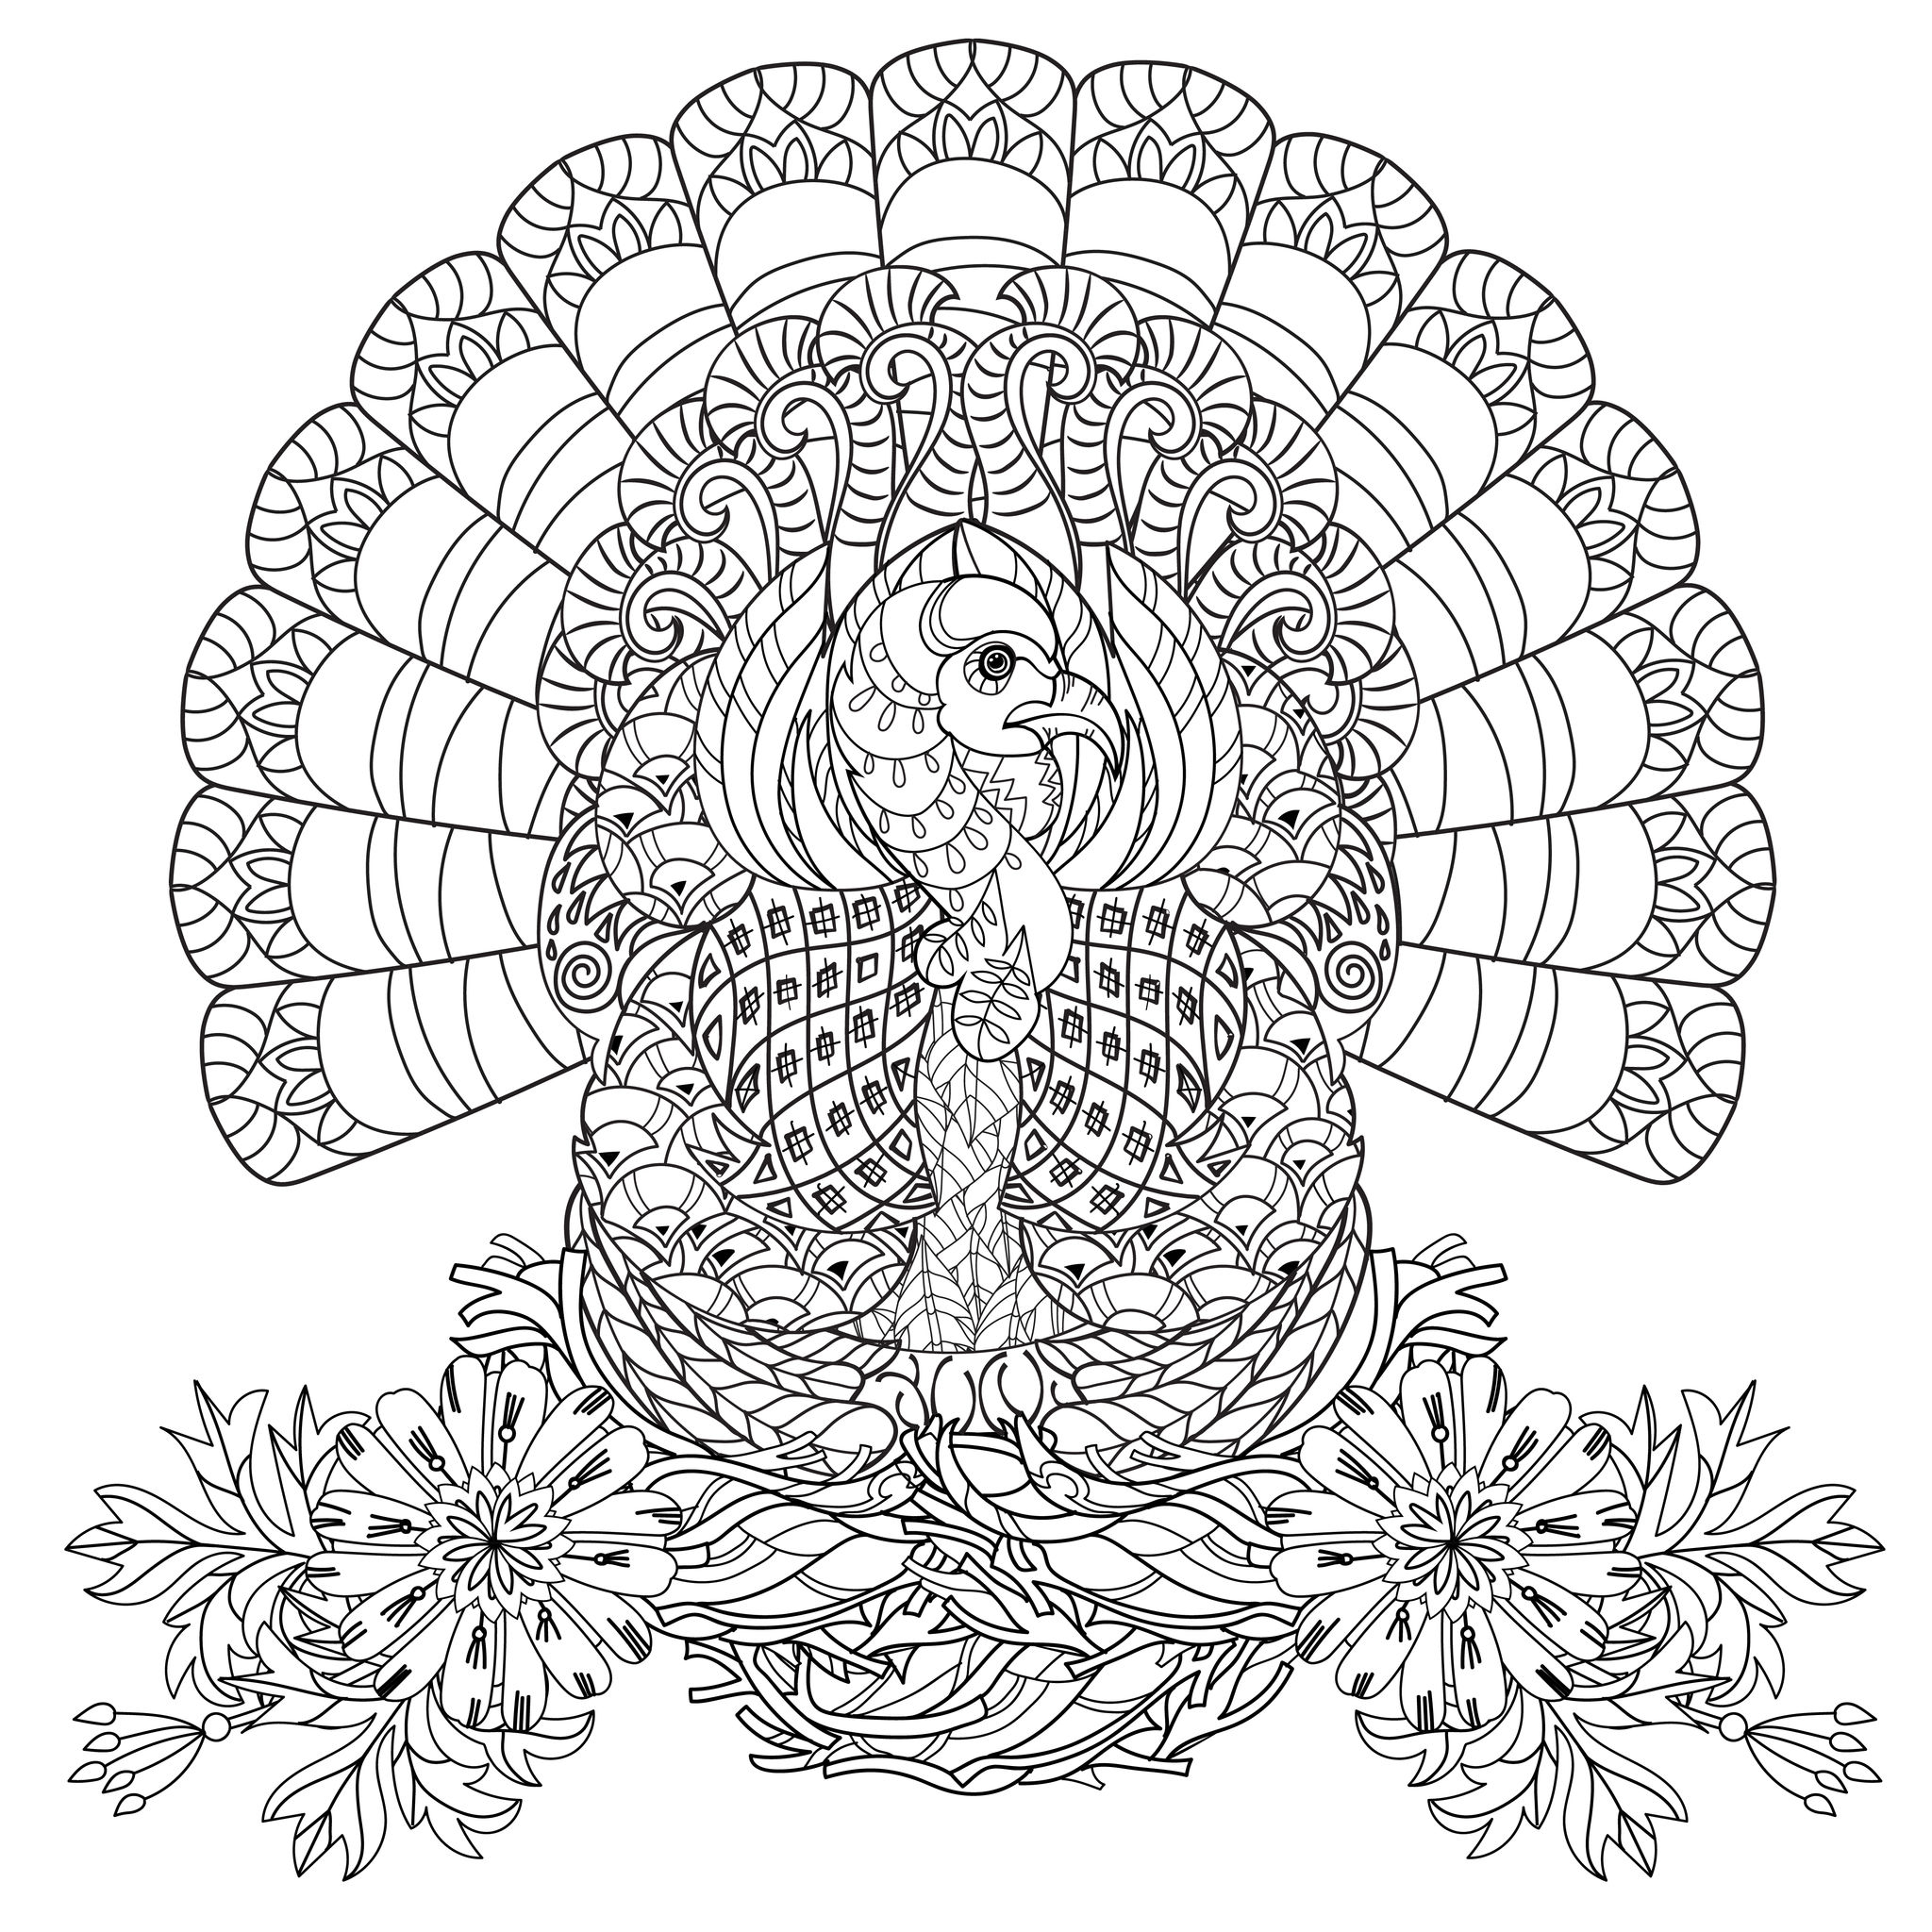 print - Christian Coloring Pages For Adults